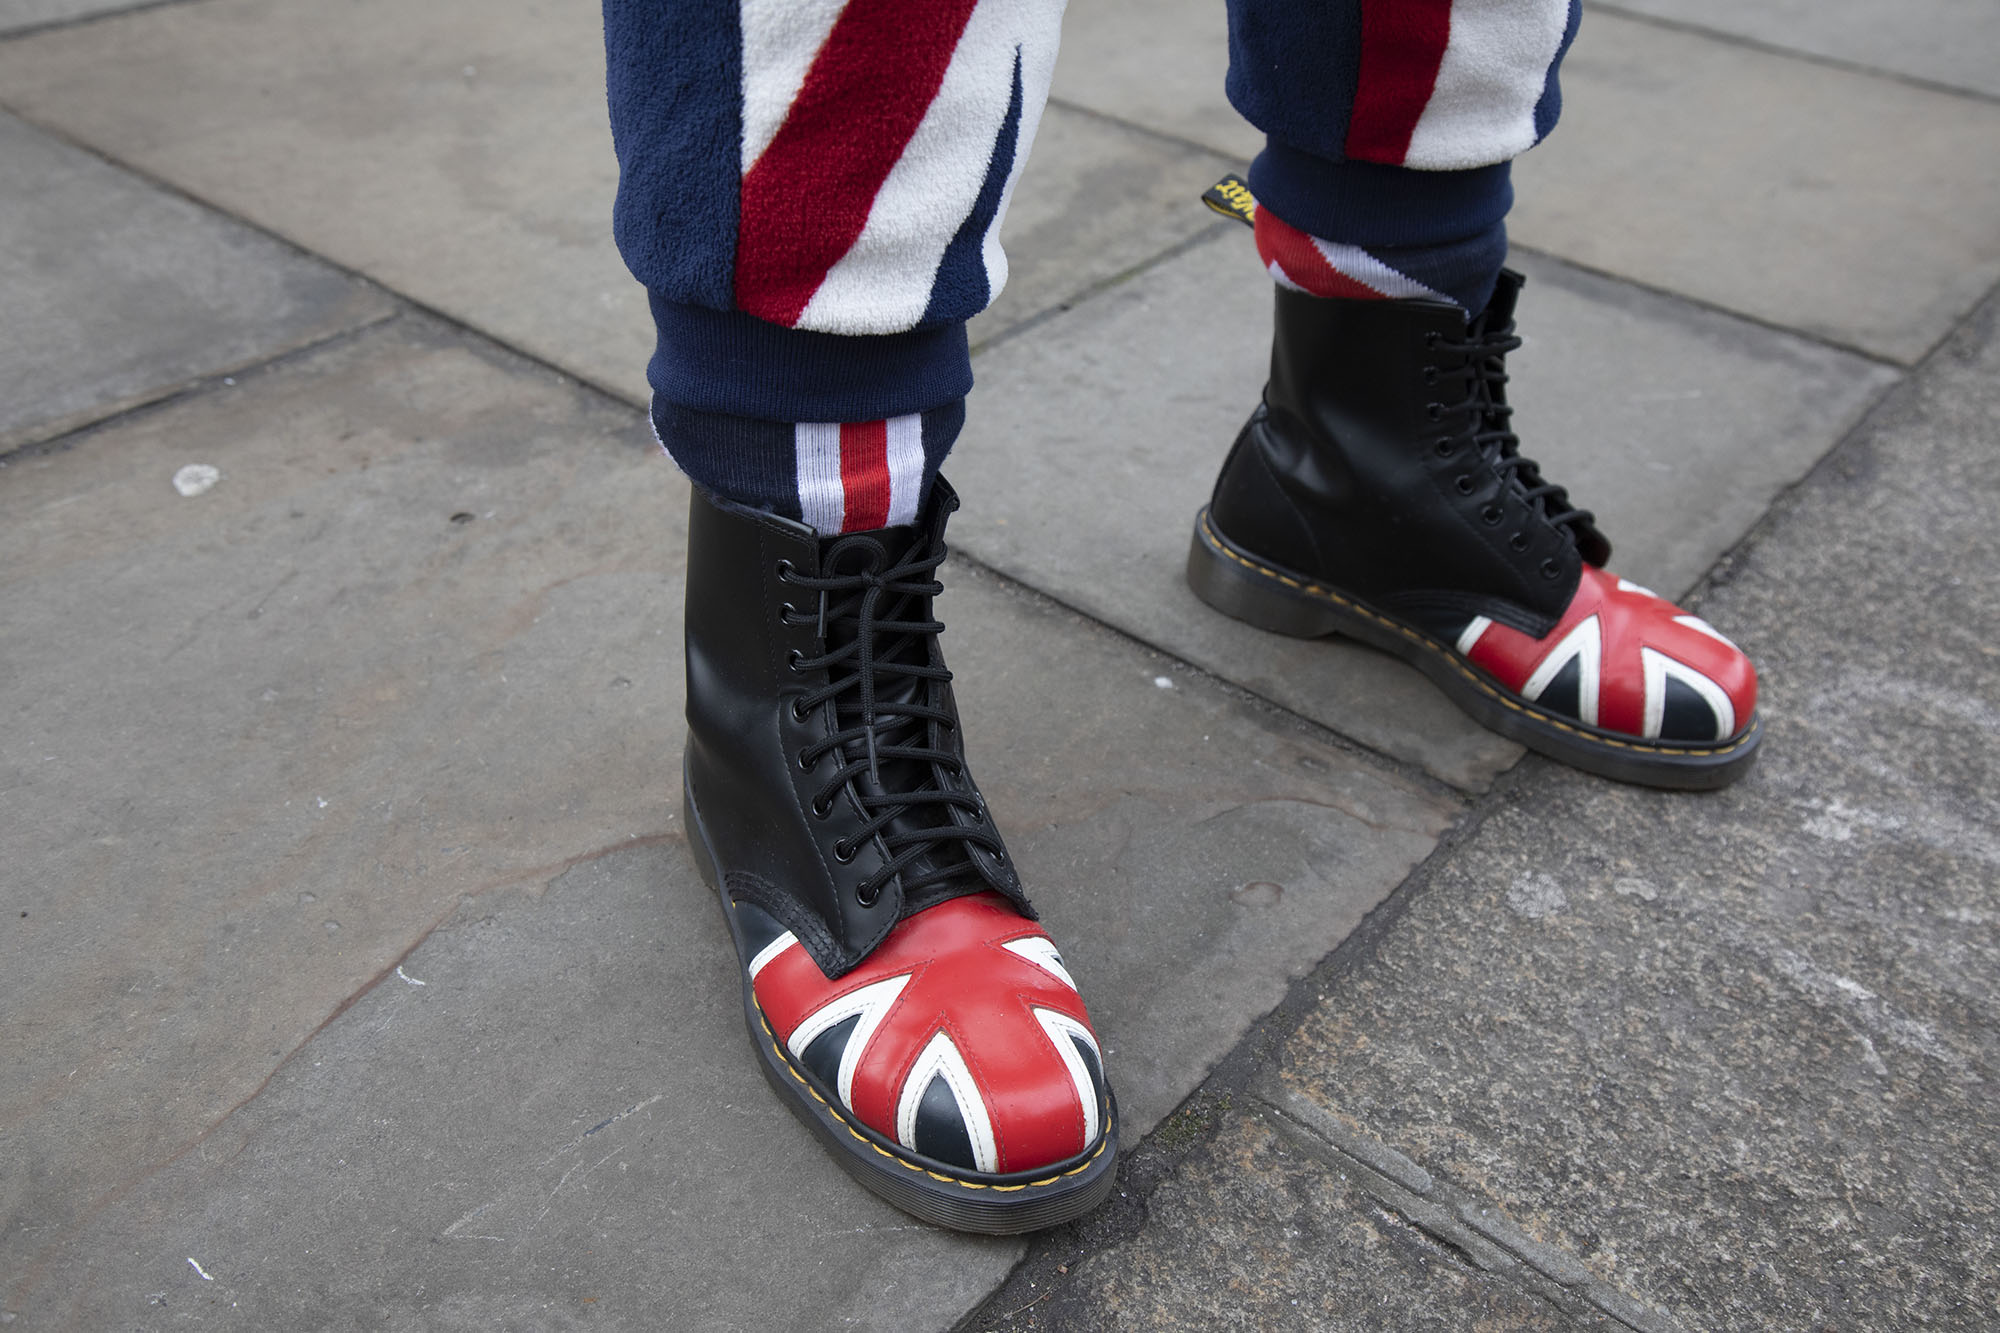 Patriotic Dr Martens of a Leave supporter on the day MPs vote on EU withdrawal deal amendments on 29th January 2019.